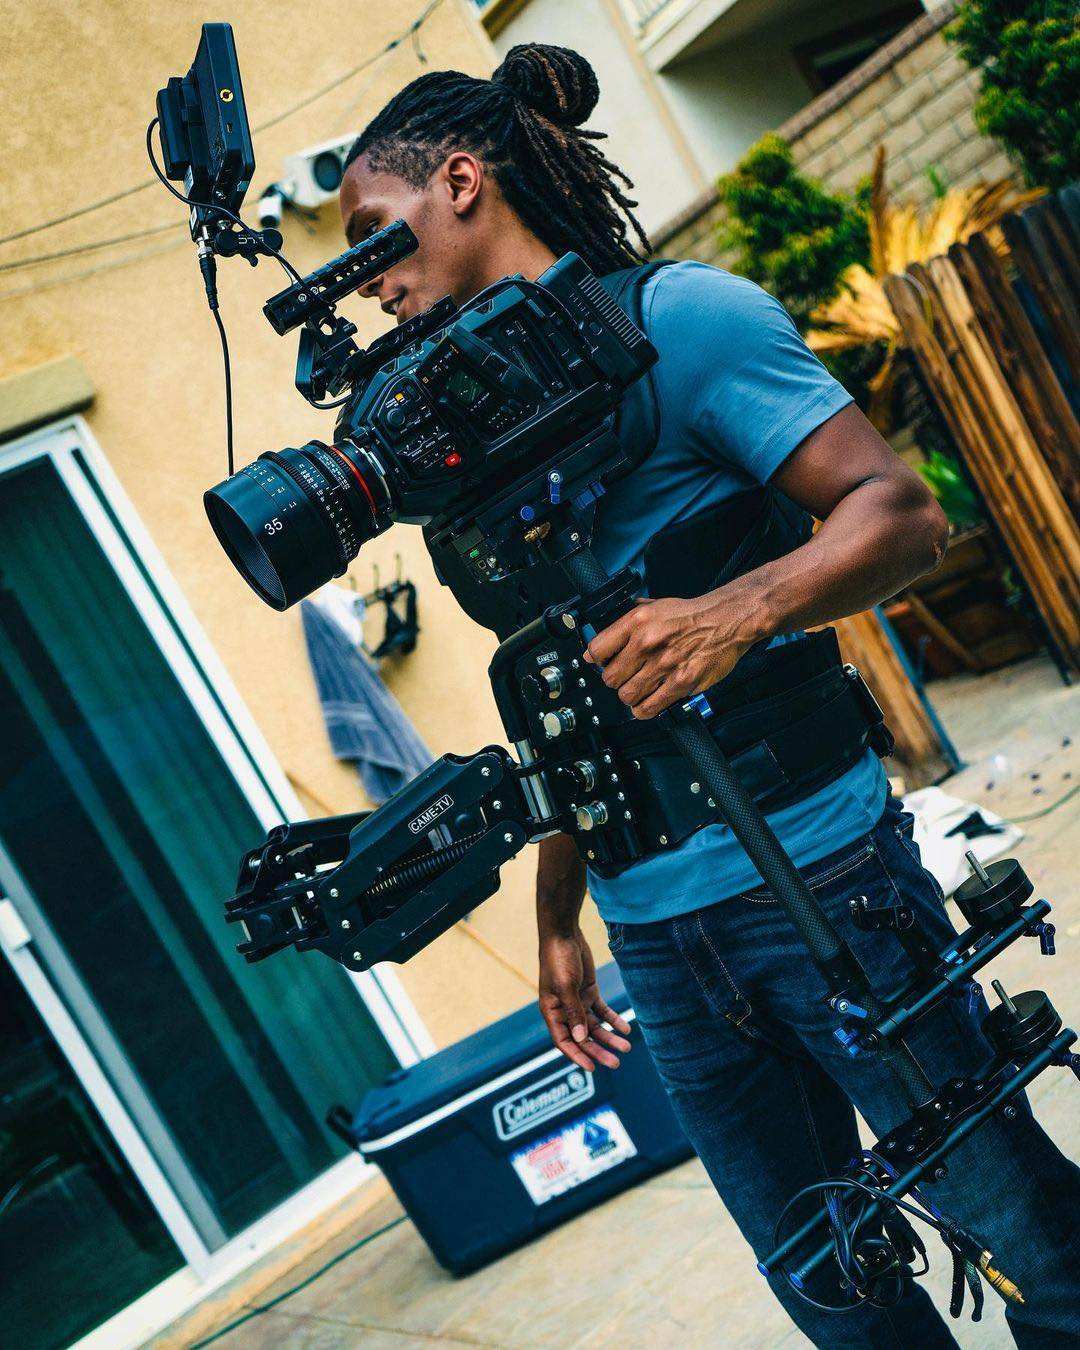 CAME-TV Stabilizer And Vest